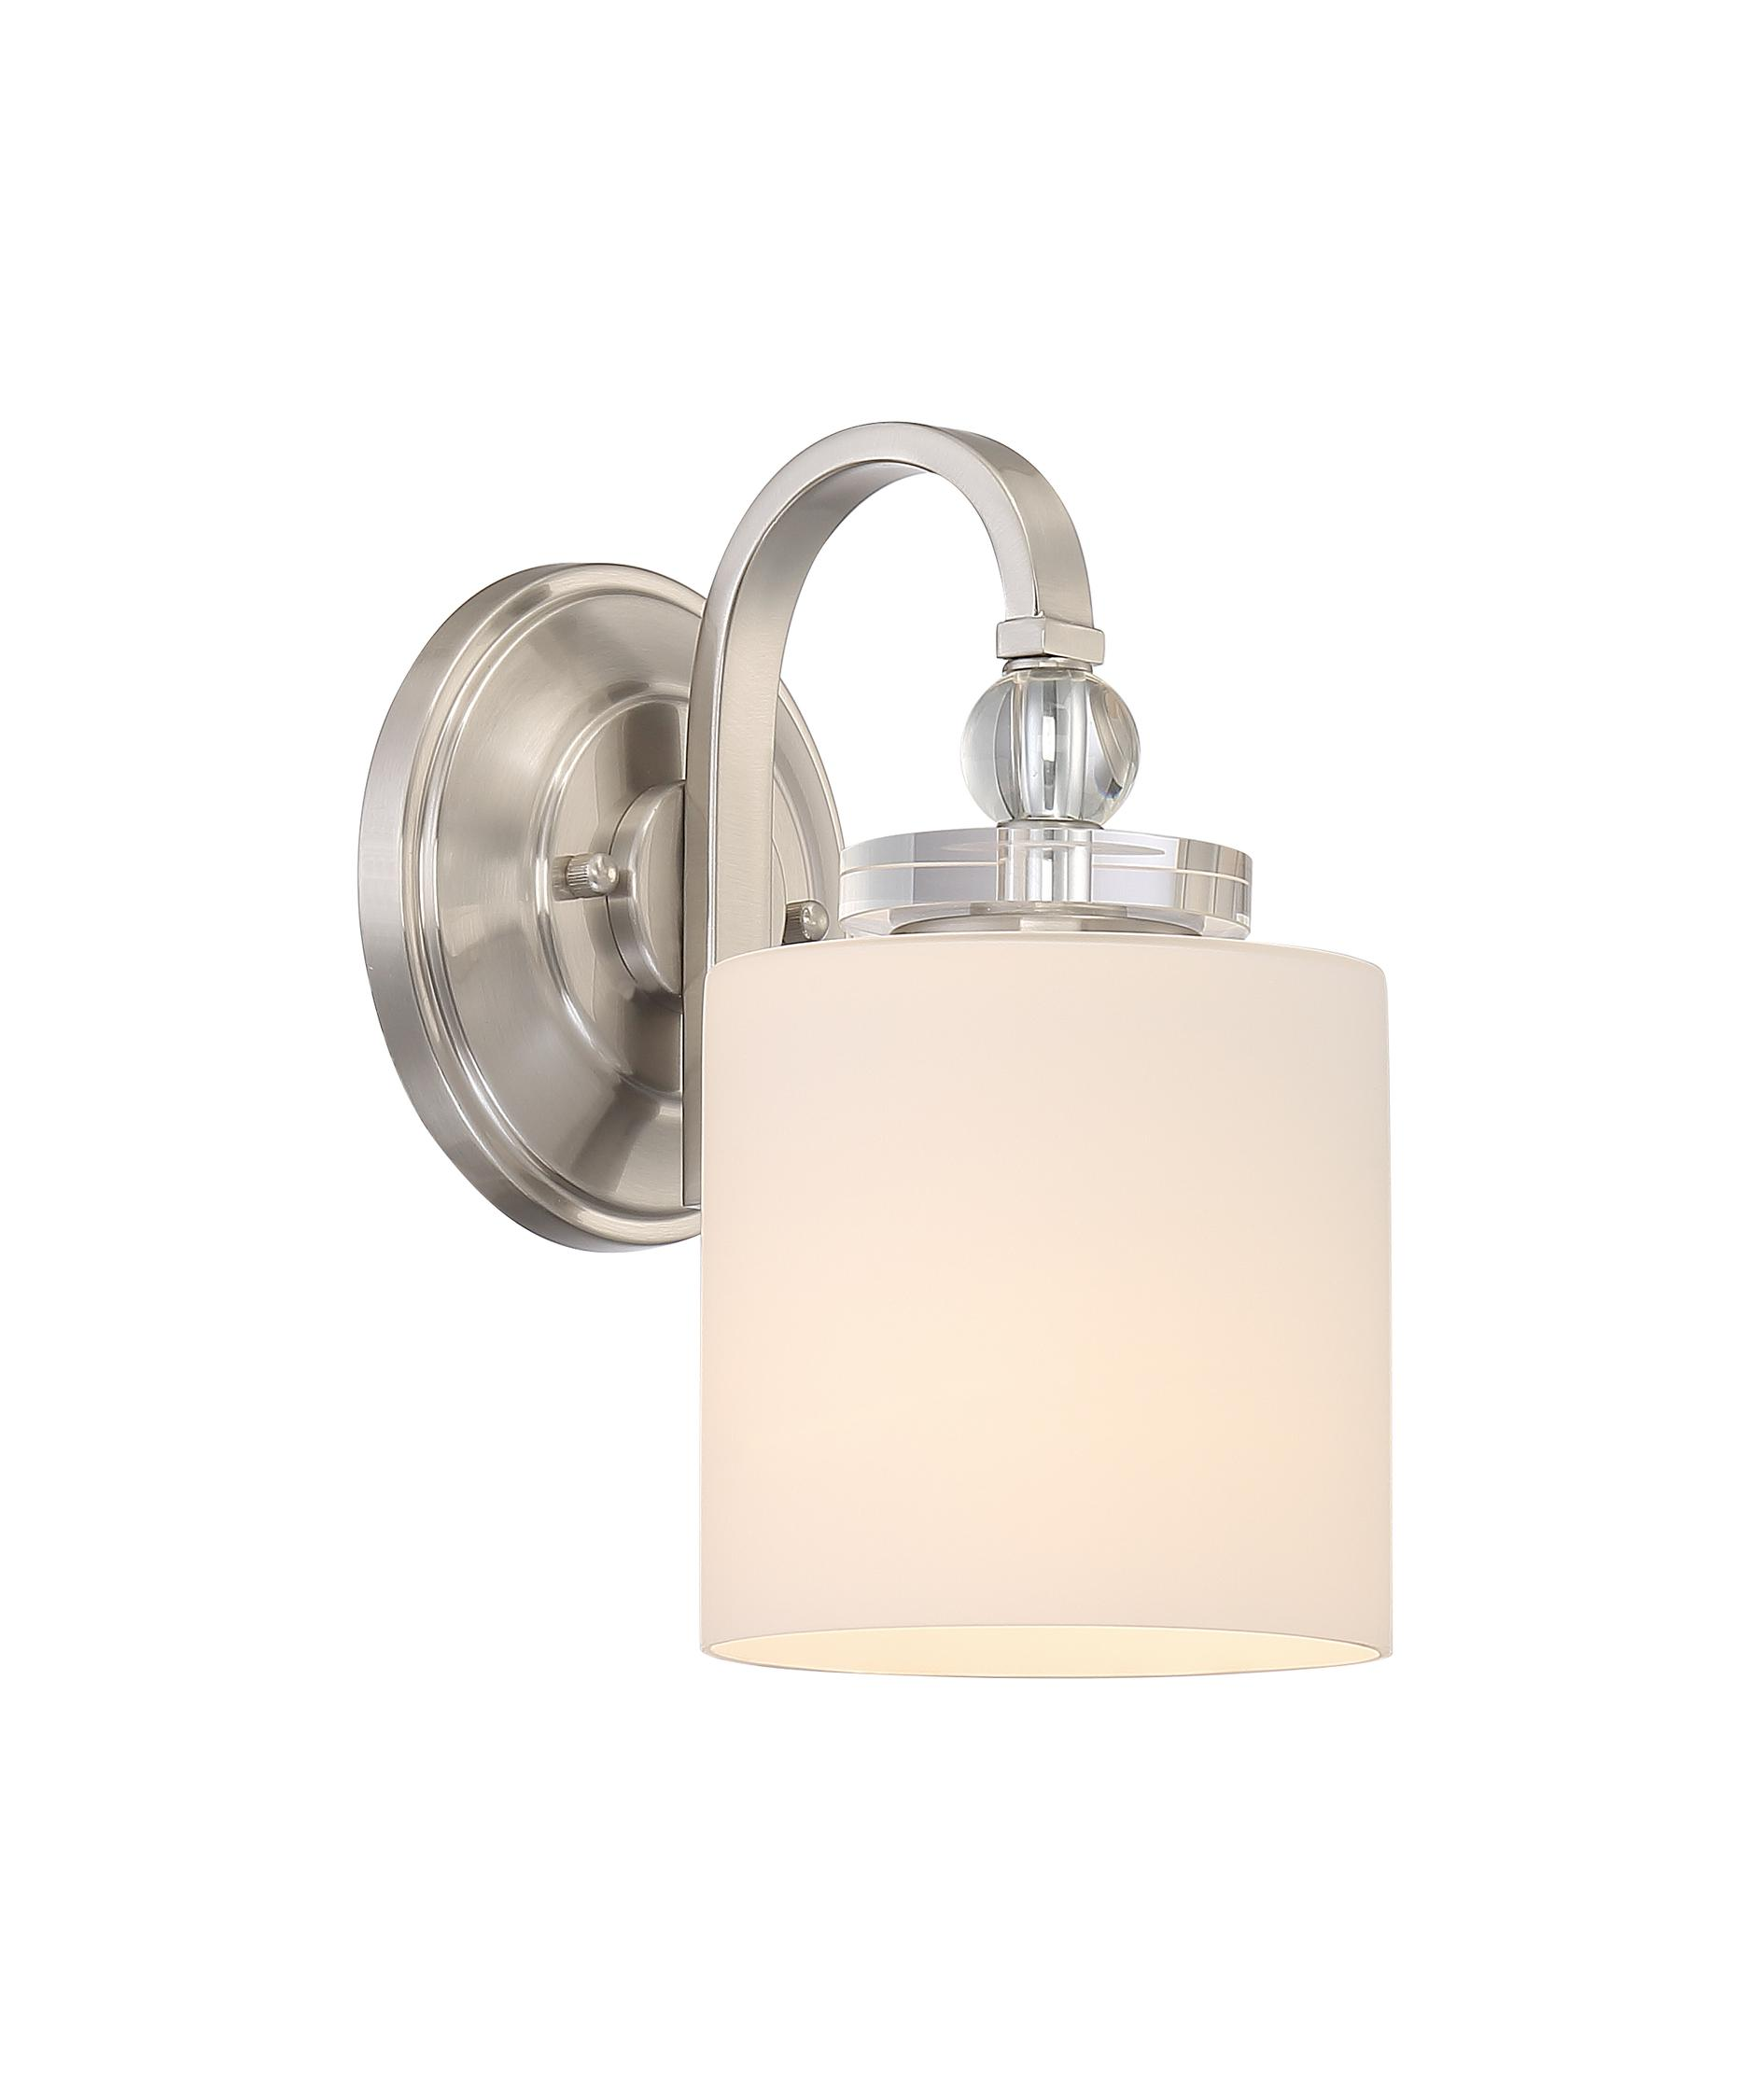 quoizel dw8701 downtown 6 inch wide wall sconce capitol lighting